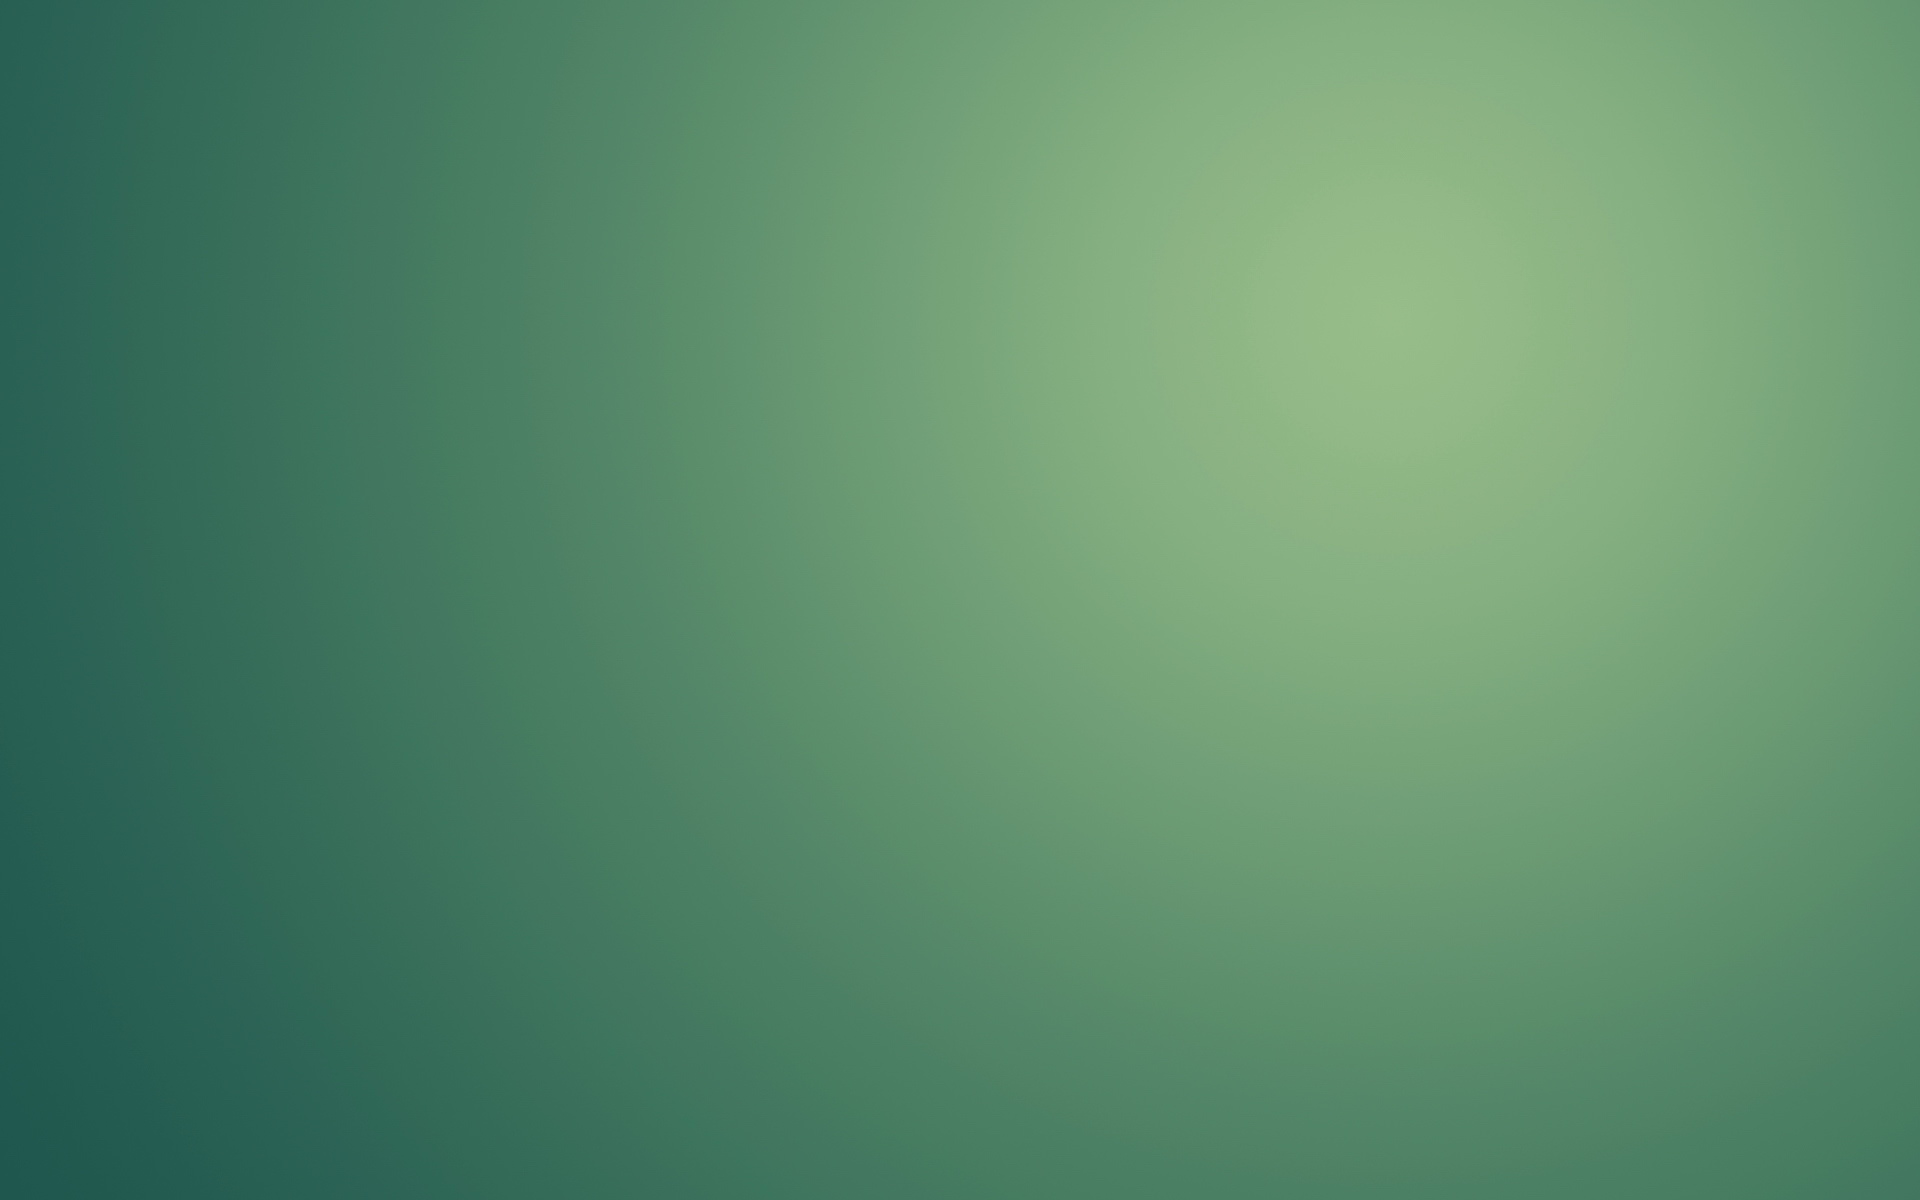 Free Art Wallpaper: Light green